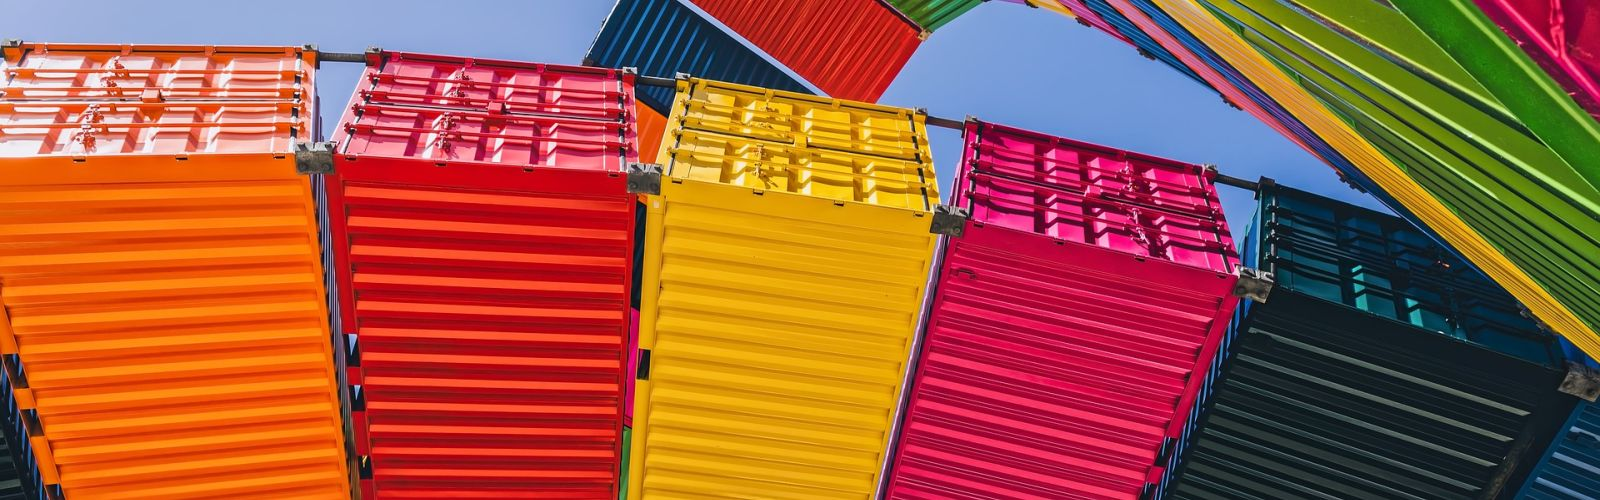 freight-container